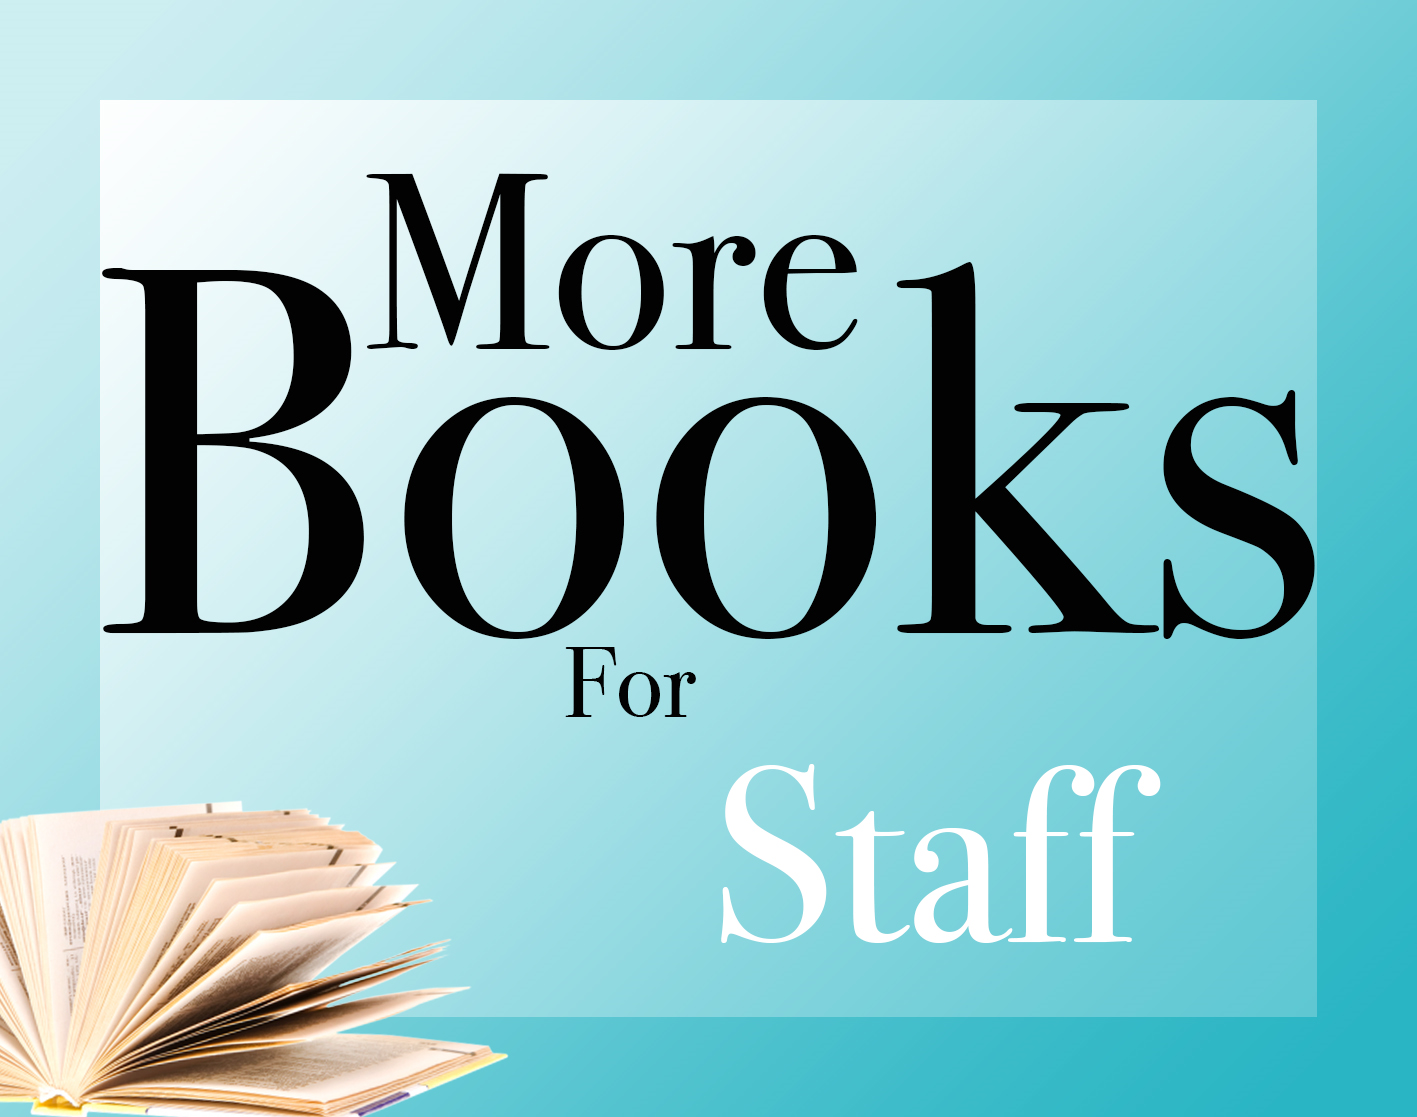 More books for staff logo